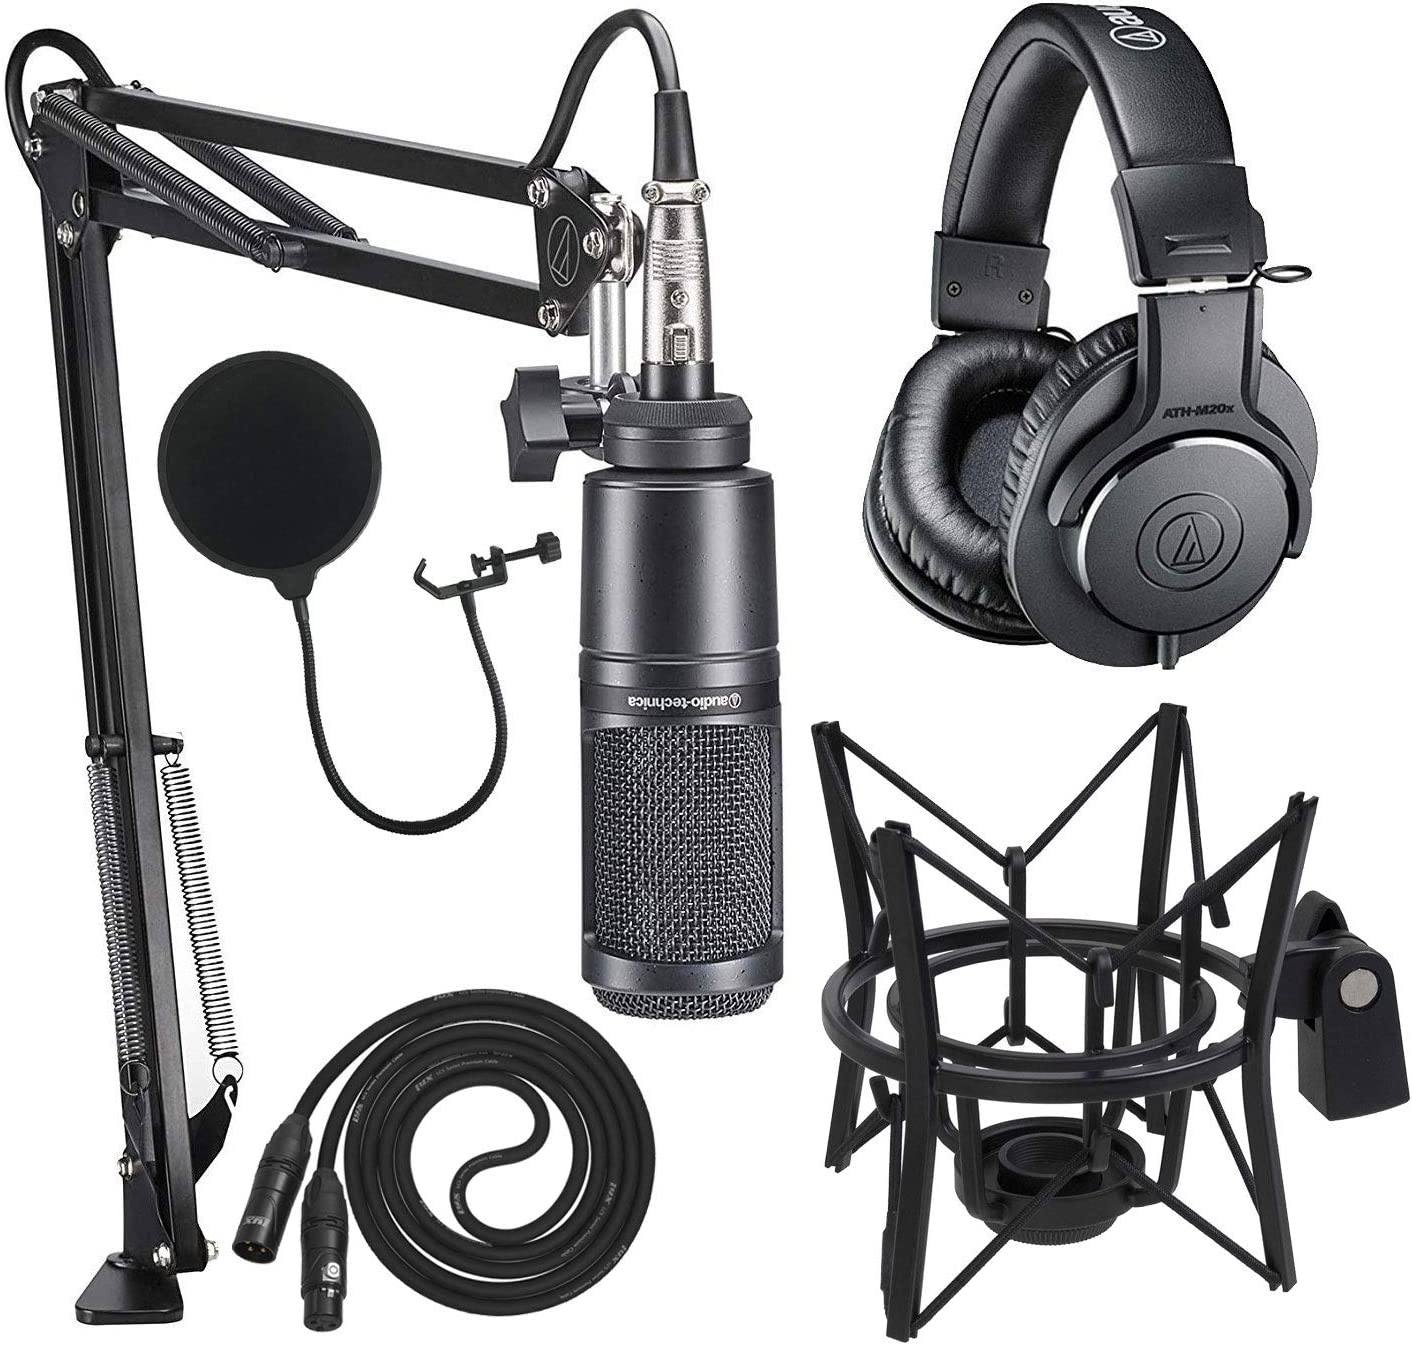 Audio Deluxe Technica AT2020PK Studio New life Microphone Boom with ATH-M20x -